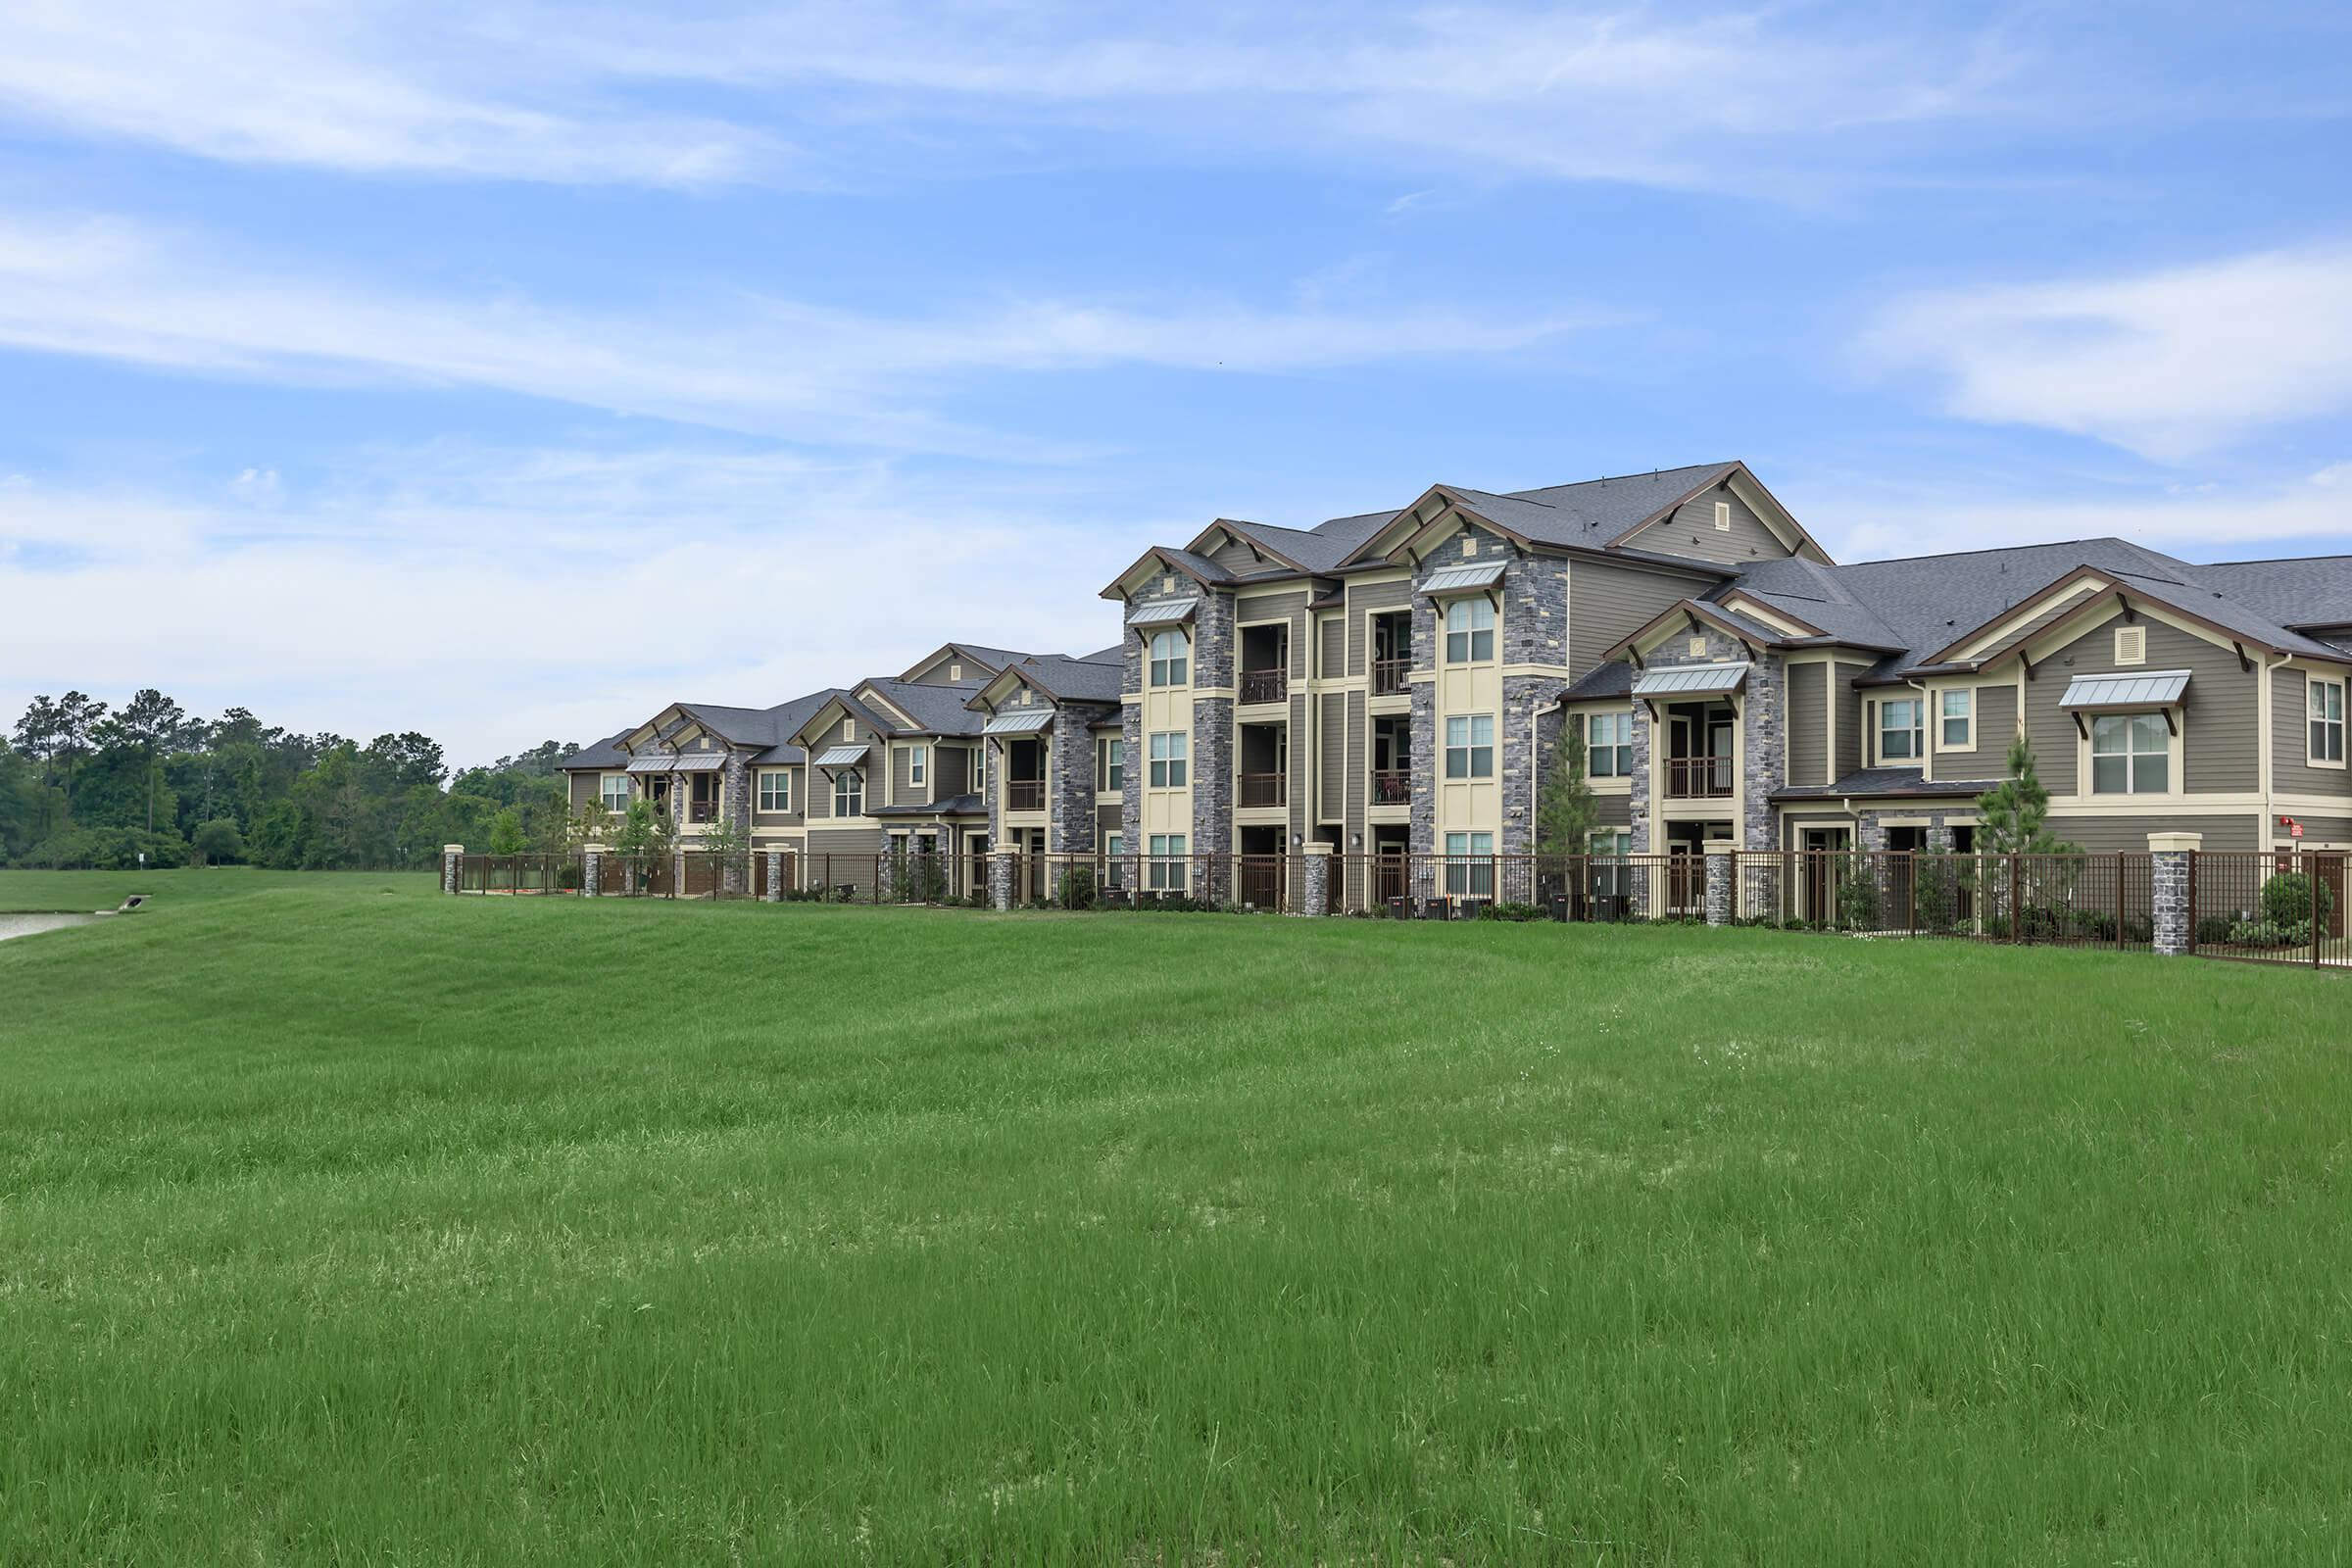 Open green grass of the golf course with Park at Tour 18 luxury apartment community.